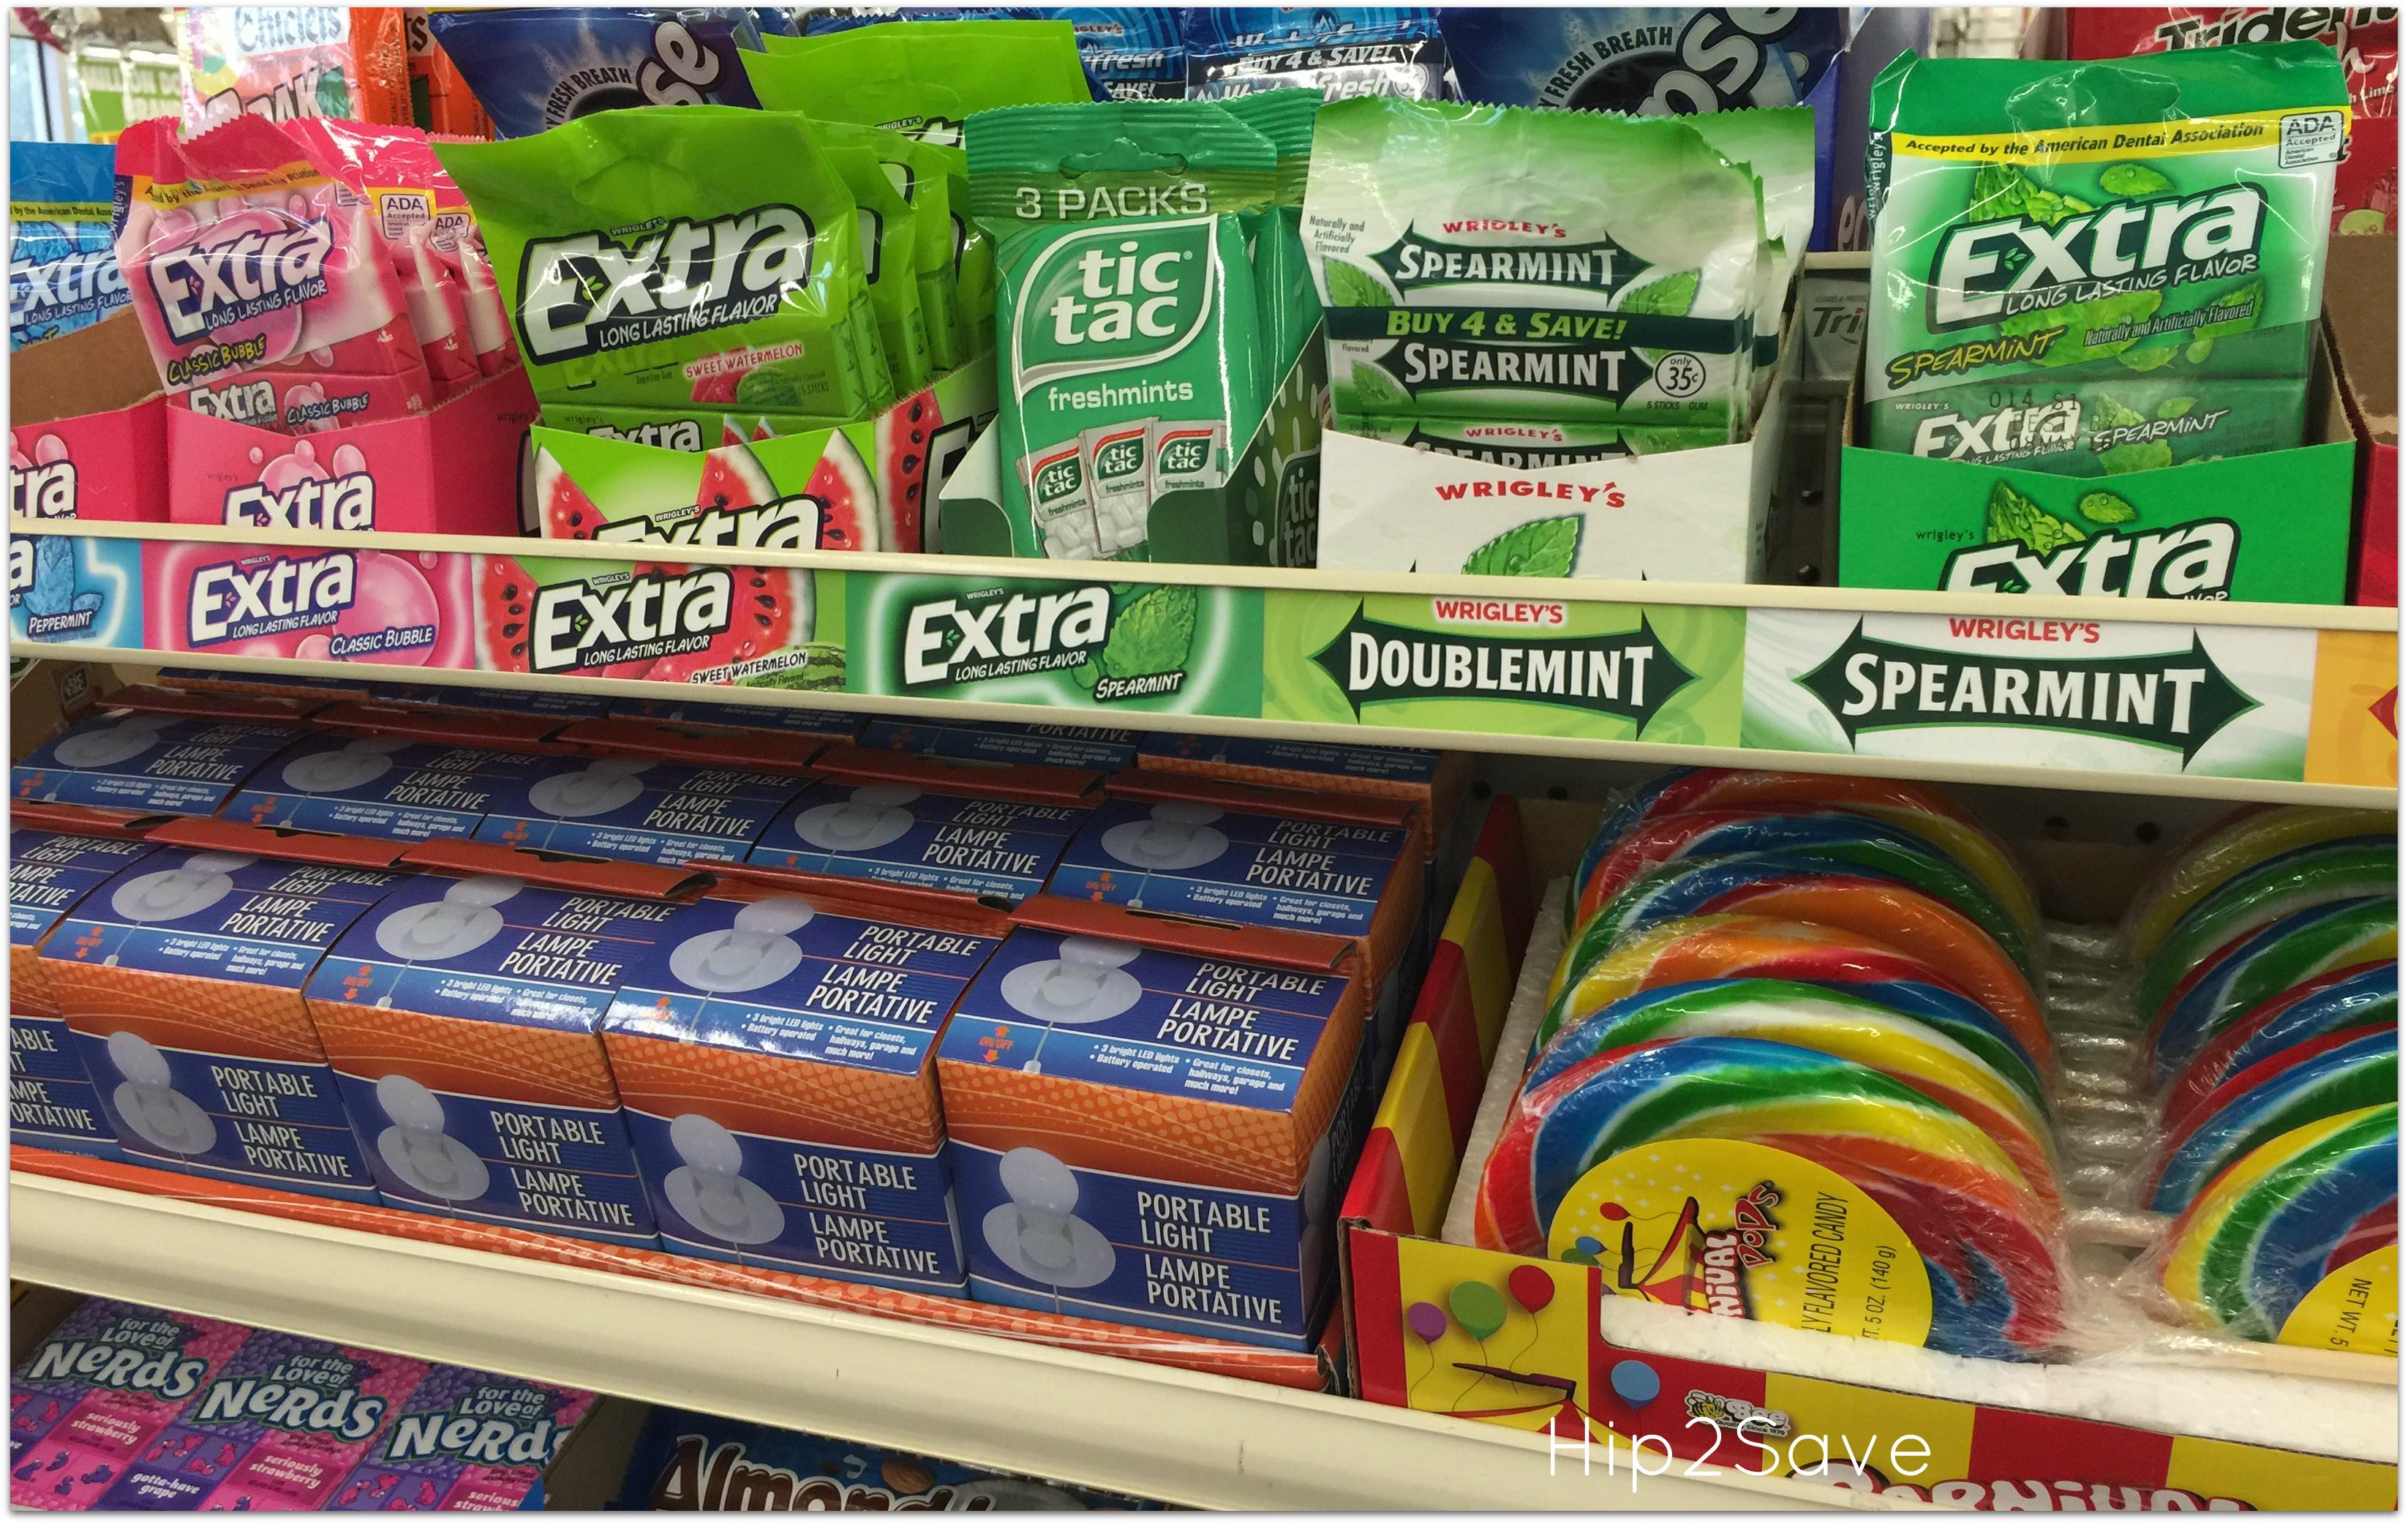 4dc396916c 15 Items TO BUY at Dollar Tree and 10 items NOT TO BUY at Dollar ...